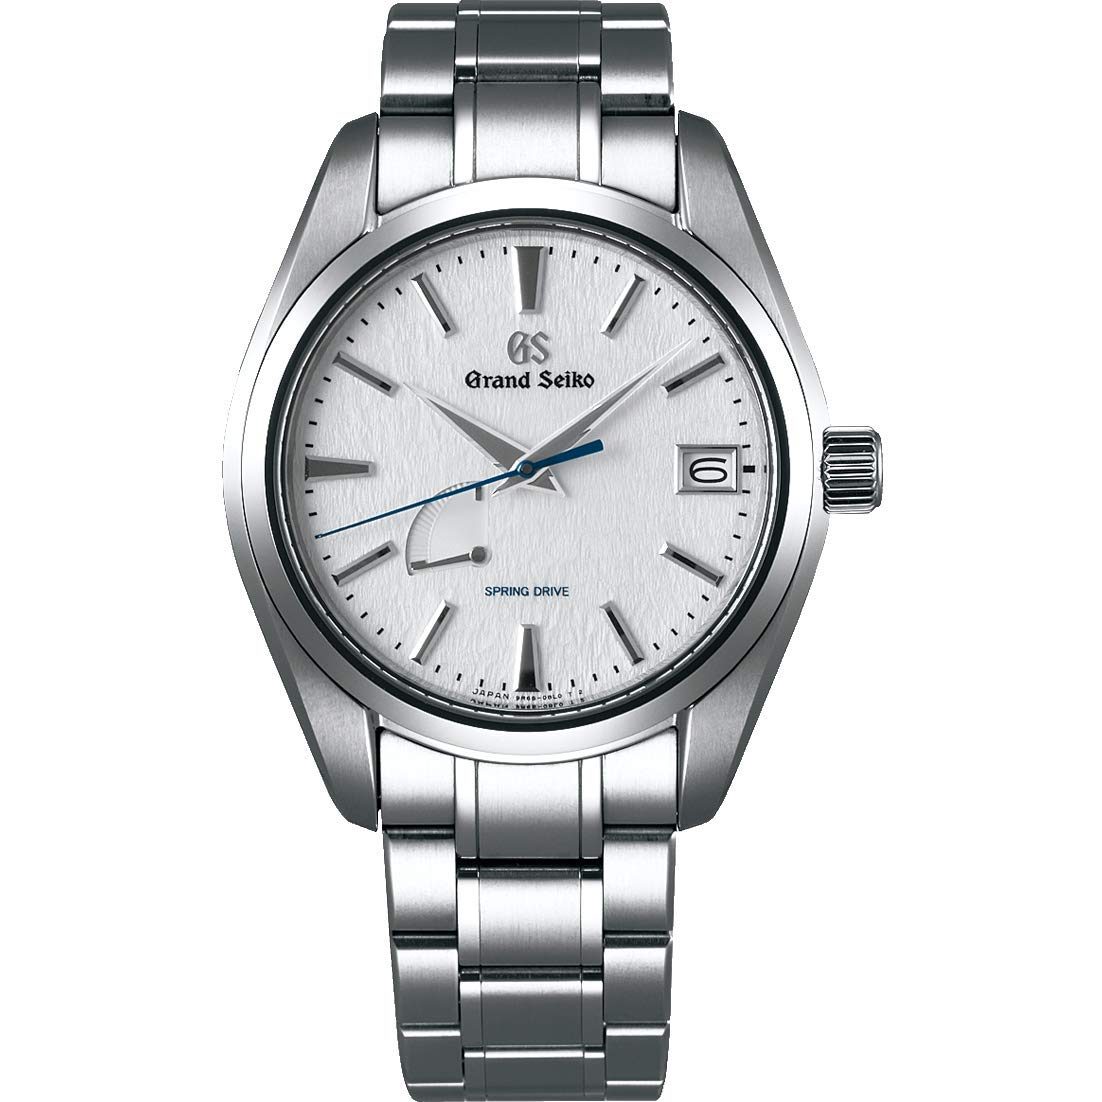 Grand Seiko, Silver Watch, Dive Watch, Stainless-steel Watch, Date Display